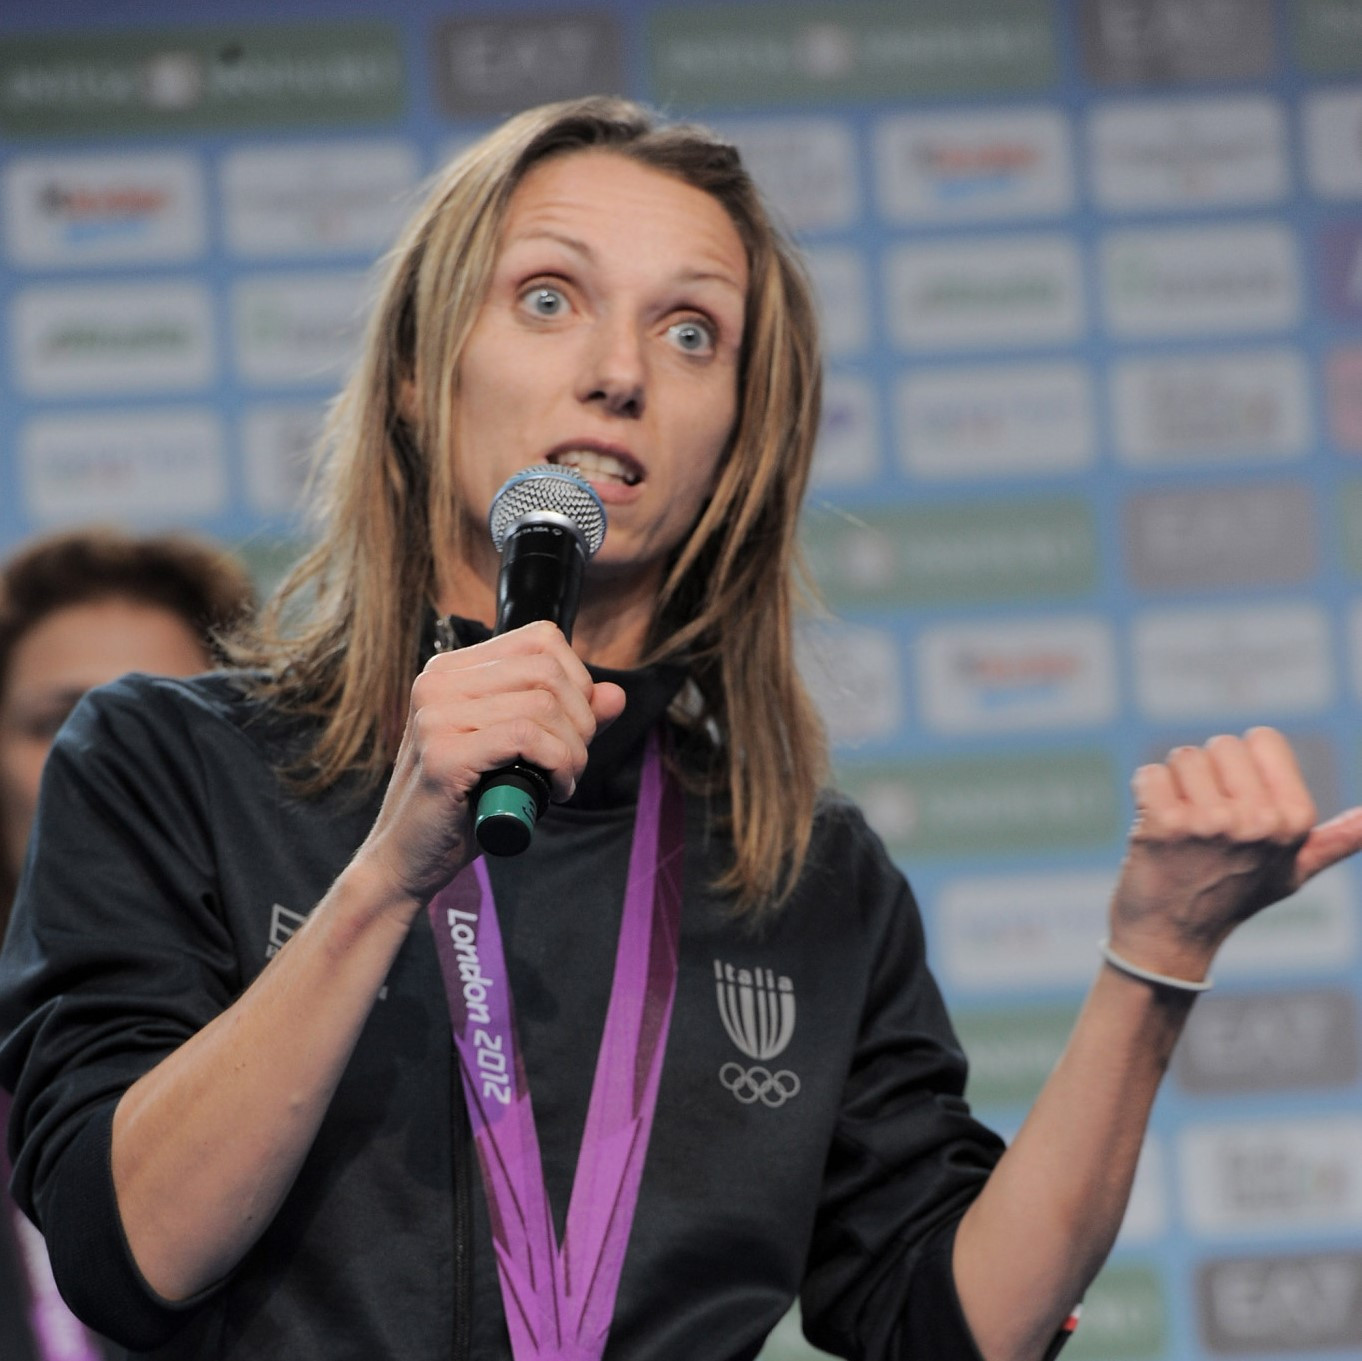 Six-time Olympic champion Vezzali appointed Italy's undersecretary for sport